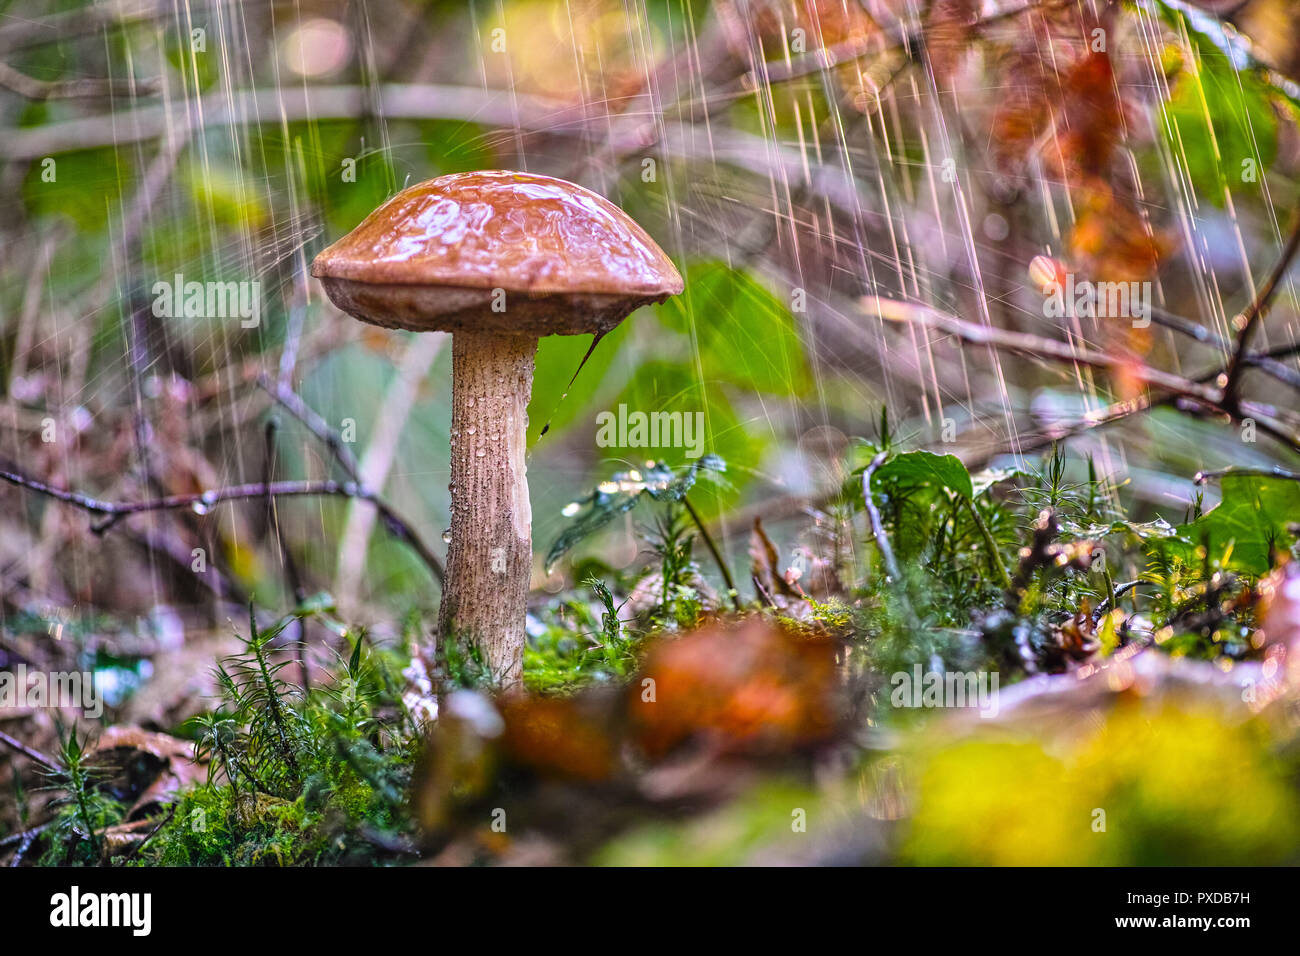 Boletus Mushroom In The Forest During The Rain Stock Photo